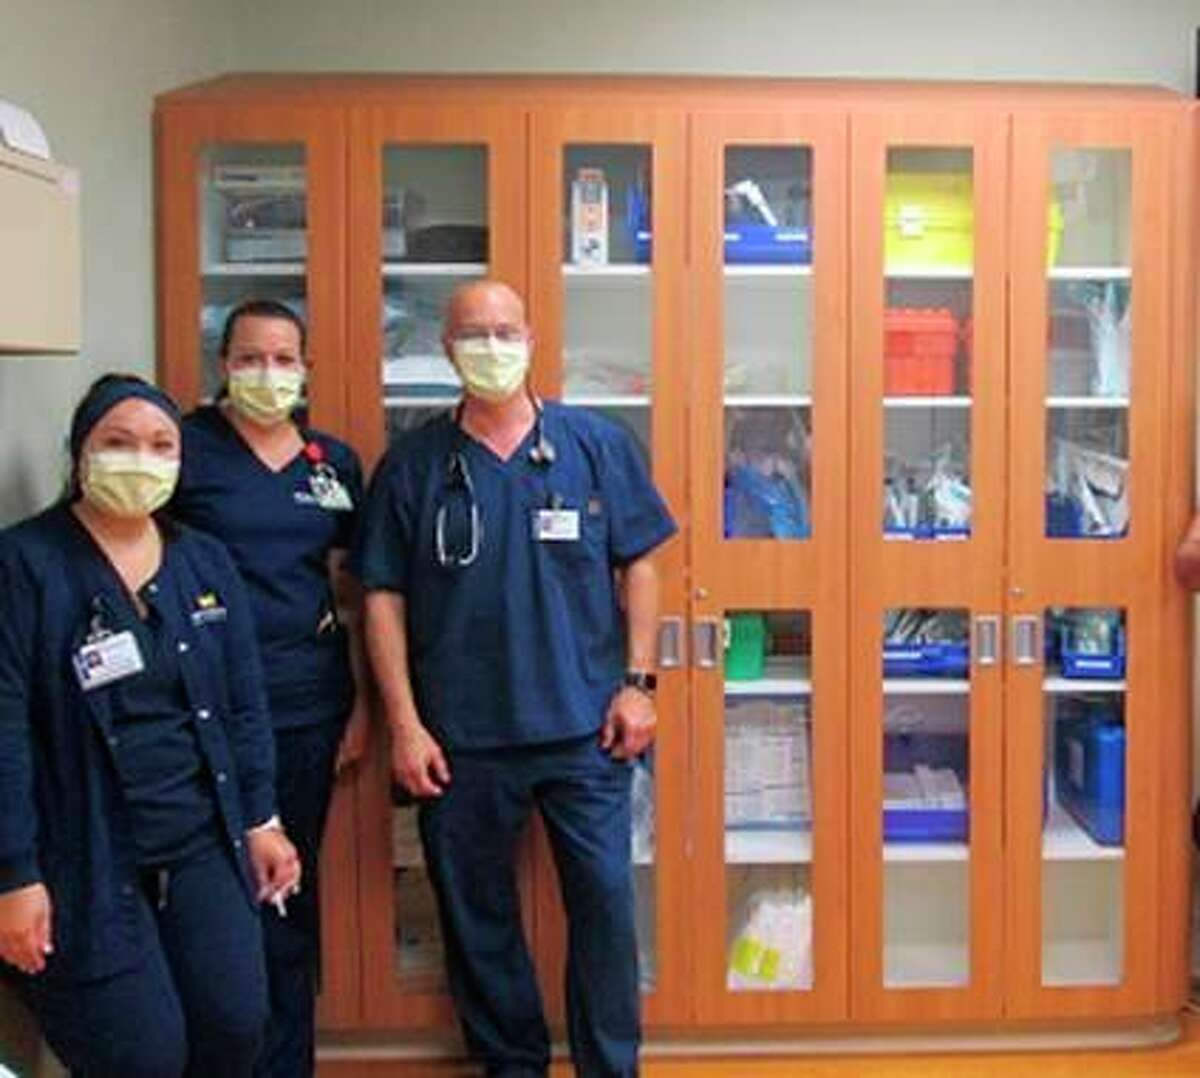 Emergency Room nurses gather with Dr. Merk in front of the new ER Trauma Room cabinetry. (Photo provided)